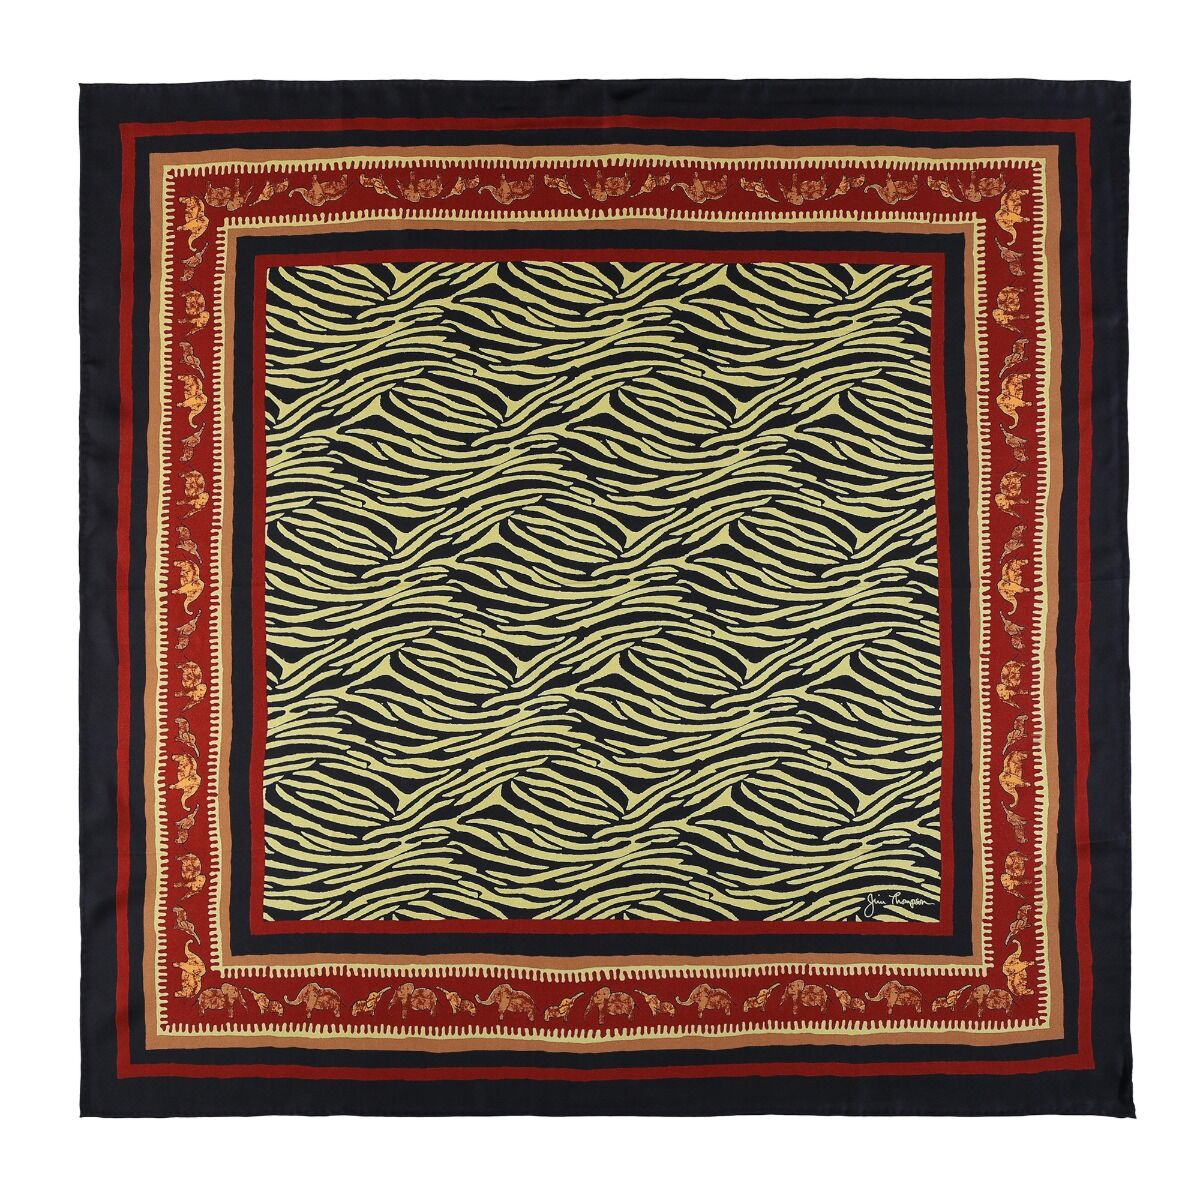 Elephant and Basket Weave Silk Twill Scarf - Red/Black